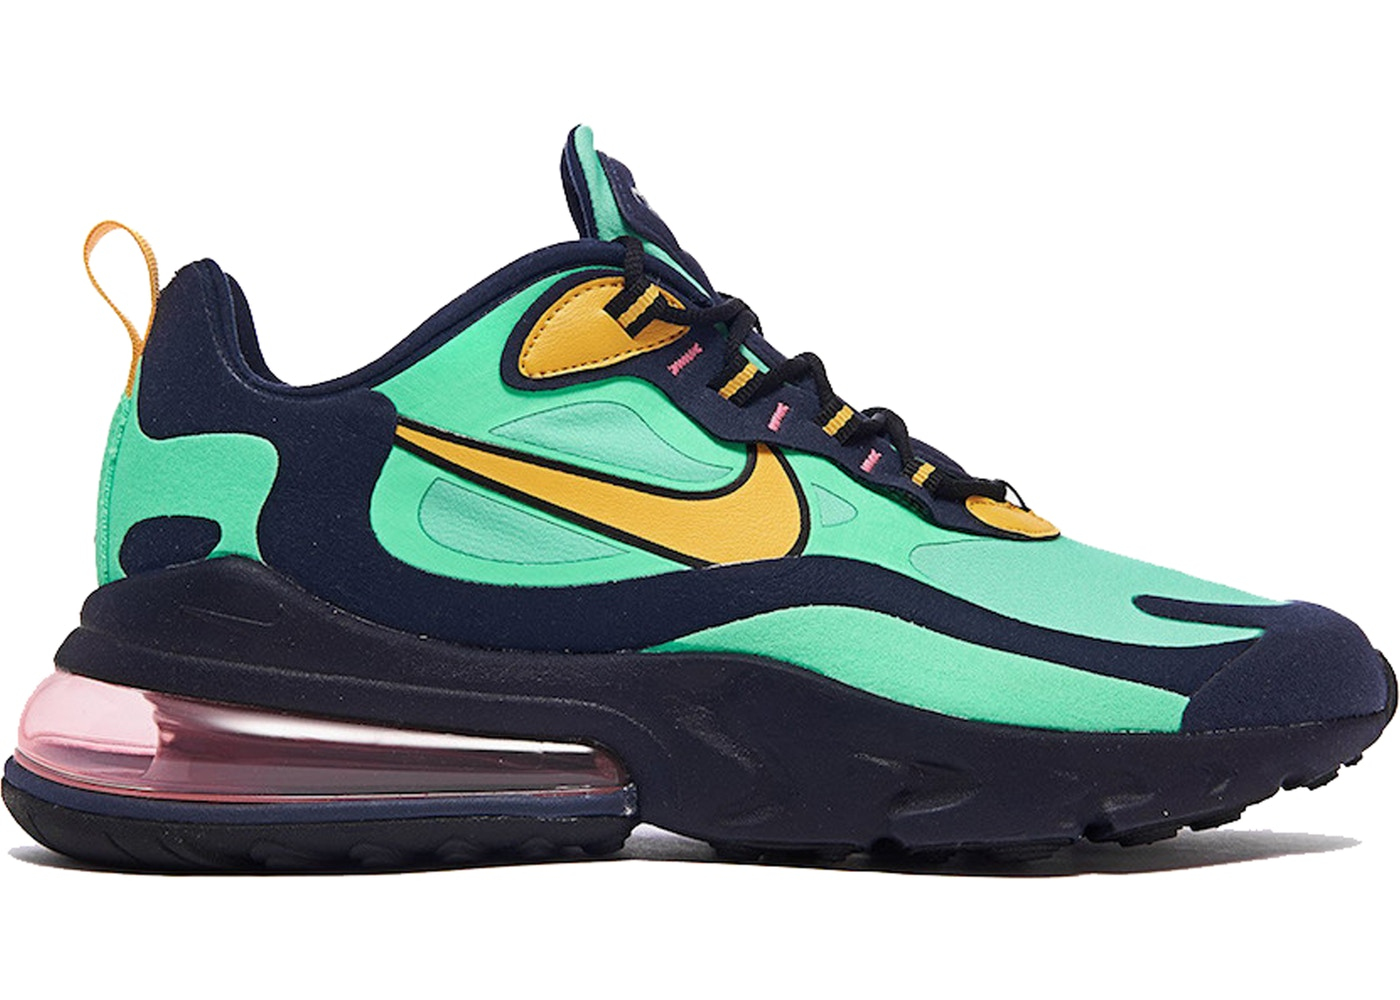 Tenis nike air max 270 react masculino ao497 1 400 Artwalk